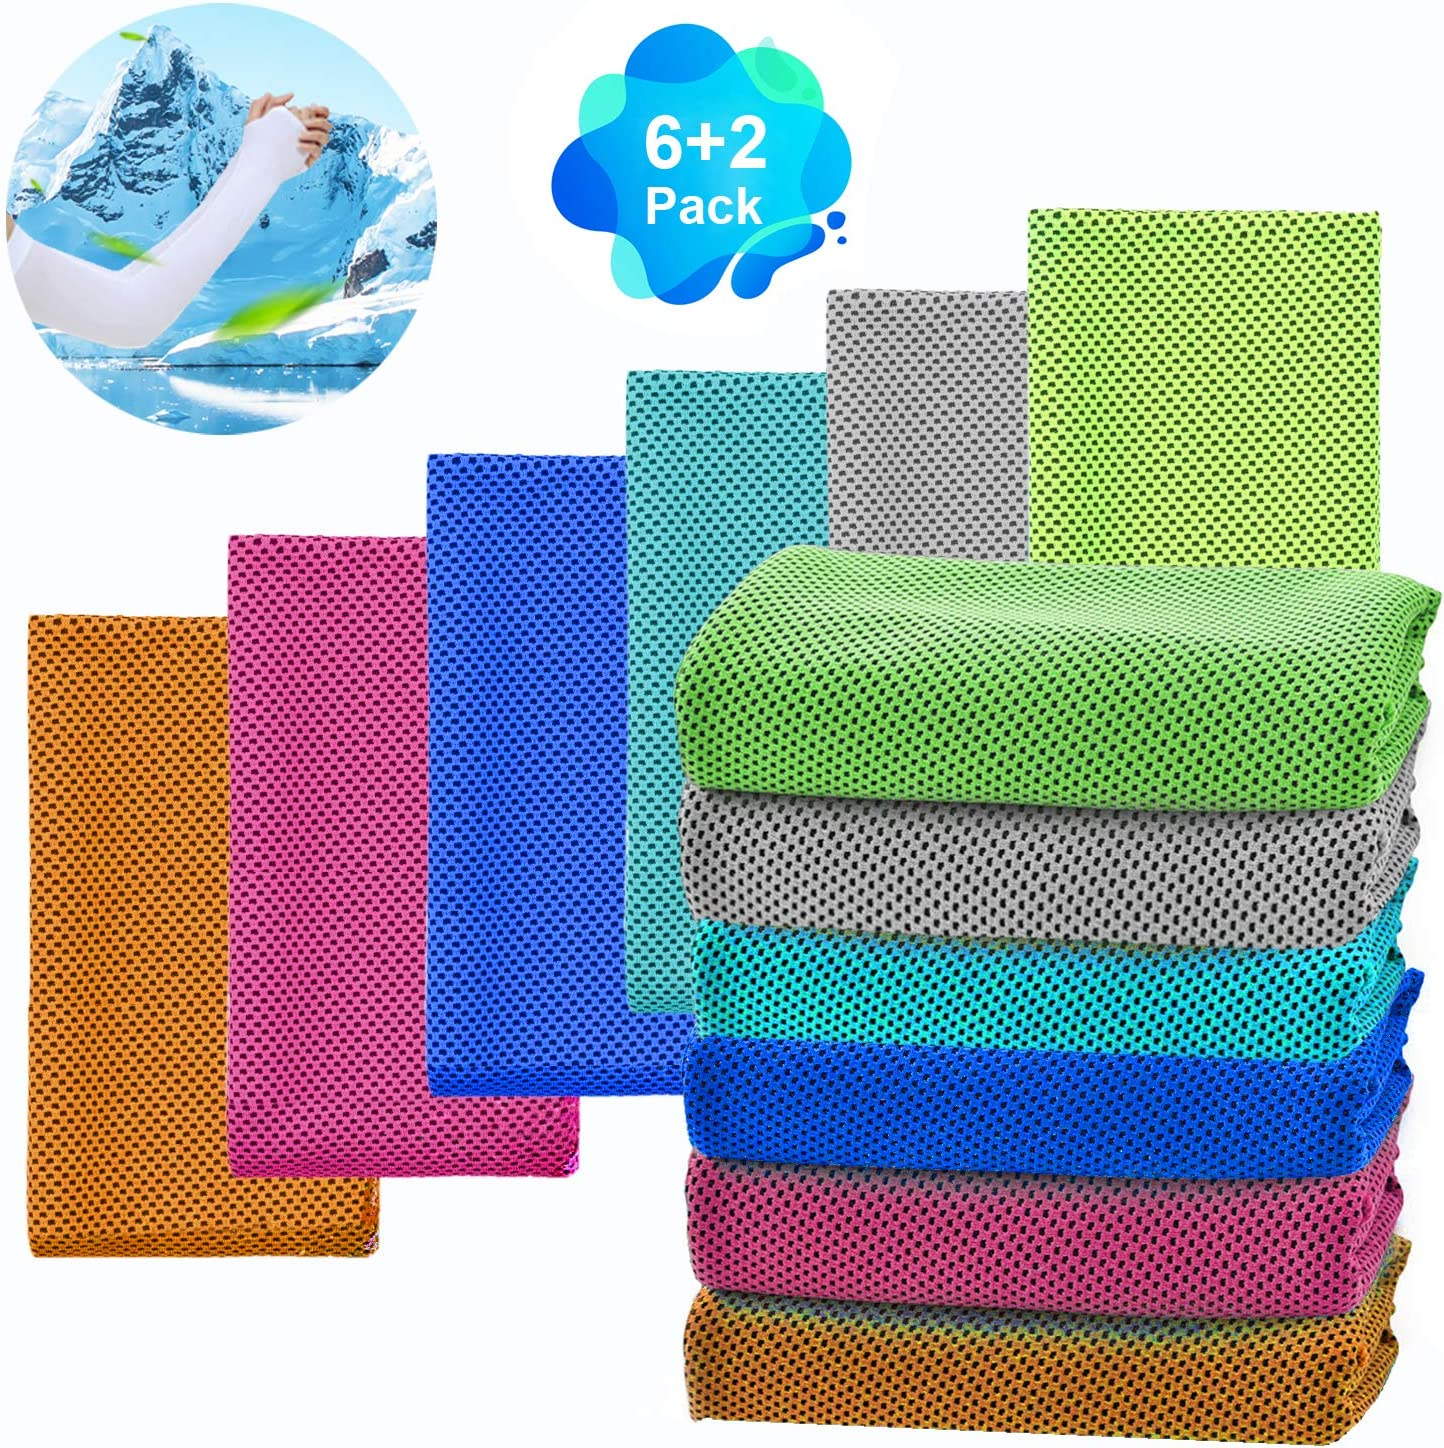 VDTG 6 Packs Cooling Towel Yoga Towel 2pcs Cooling Towel, ice Towel, Soft and Breathable Cool Towel, Microfiber Towel, Sports Towel, Yoga Towel, Running Towel, Fitness Towel, Exercise Towel